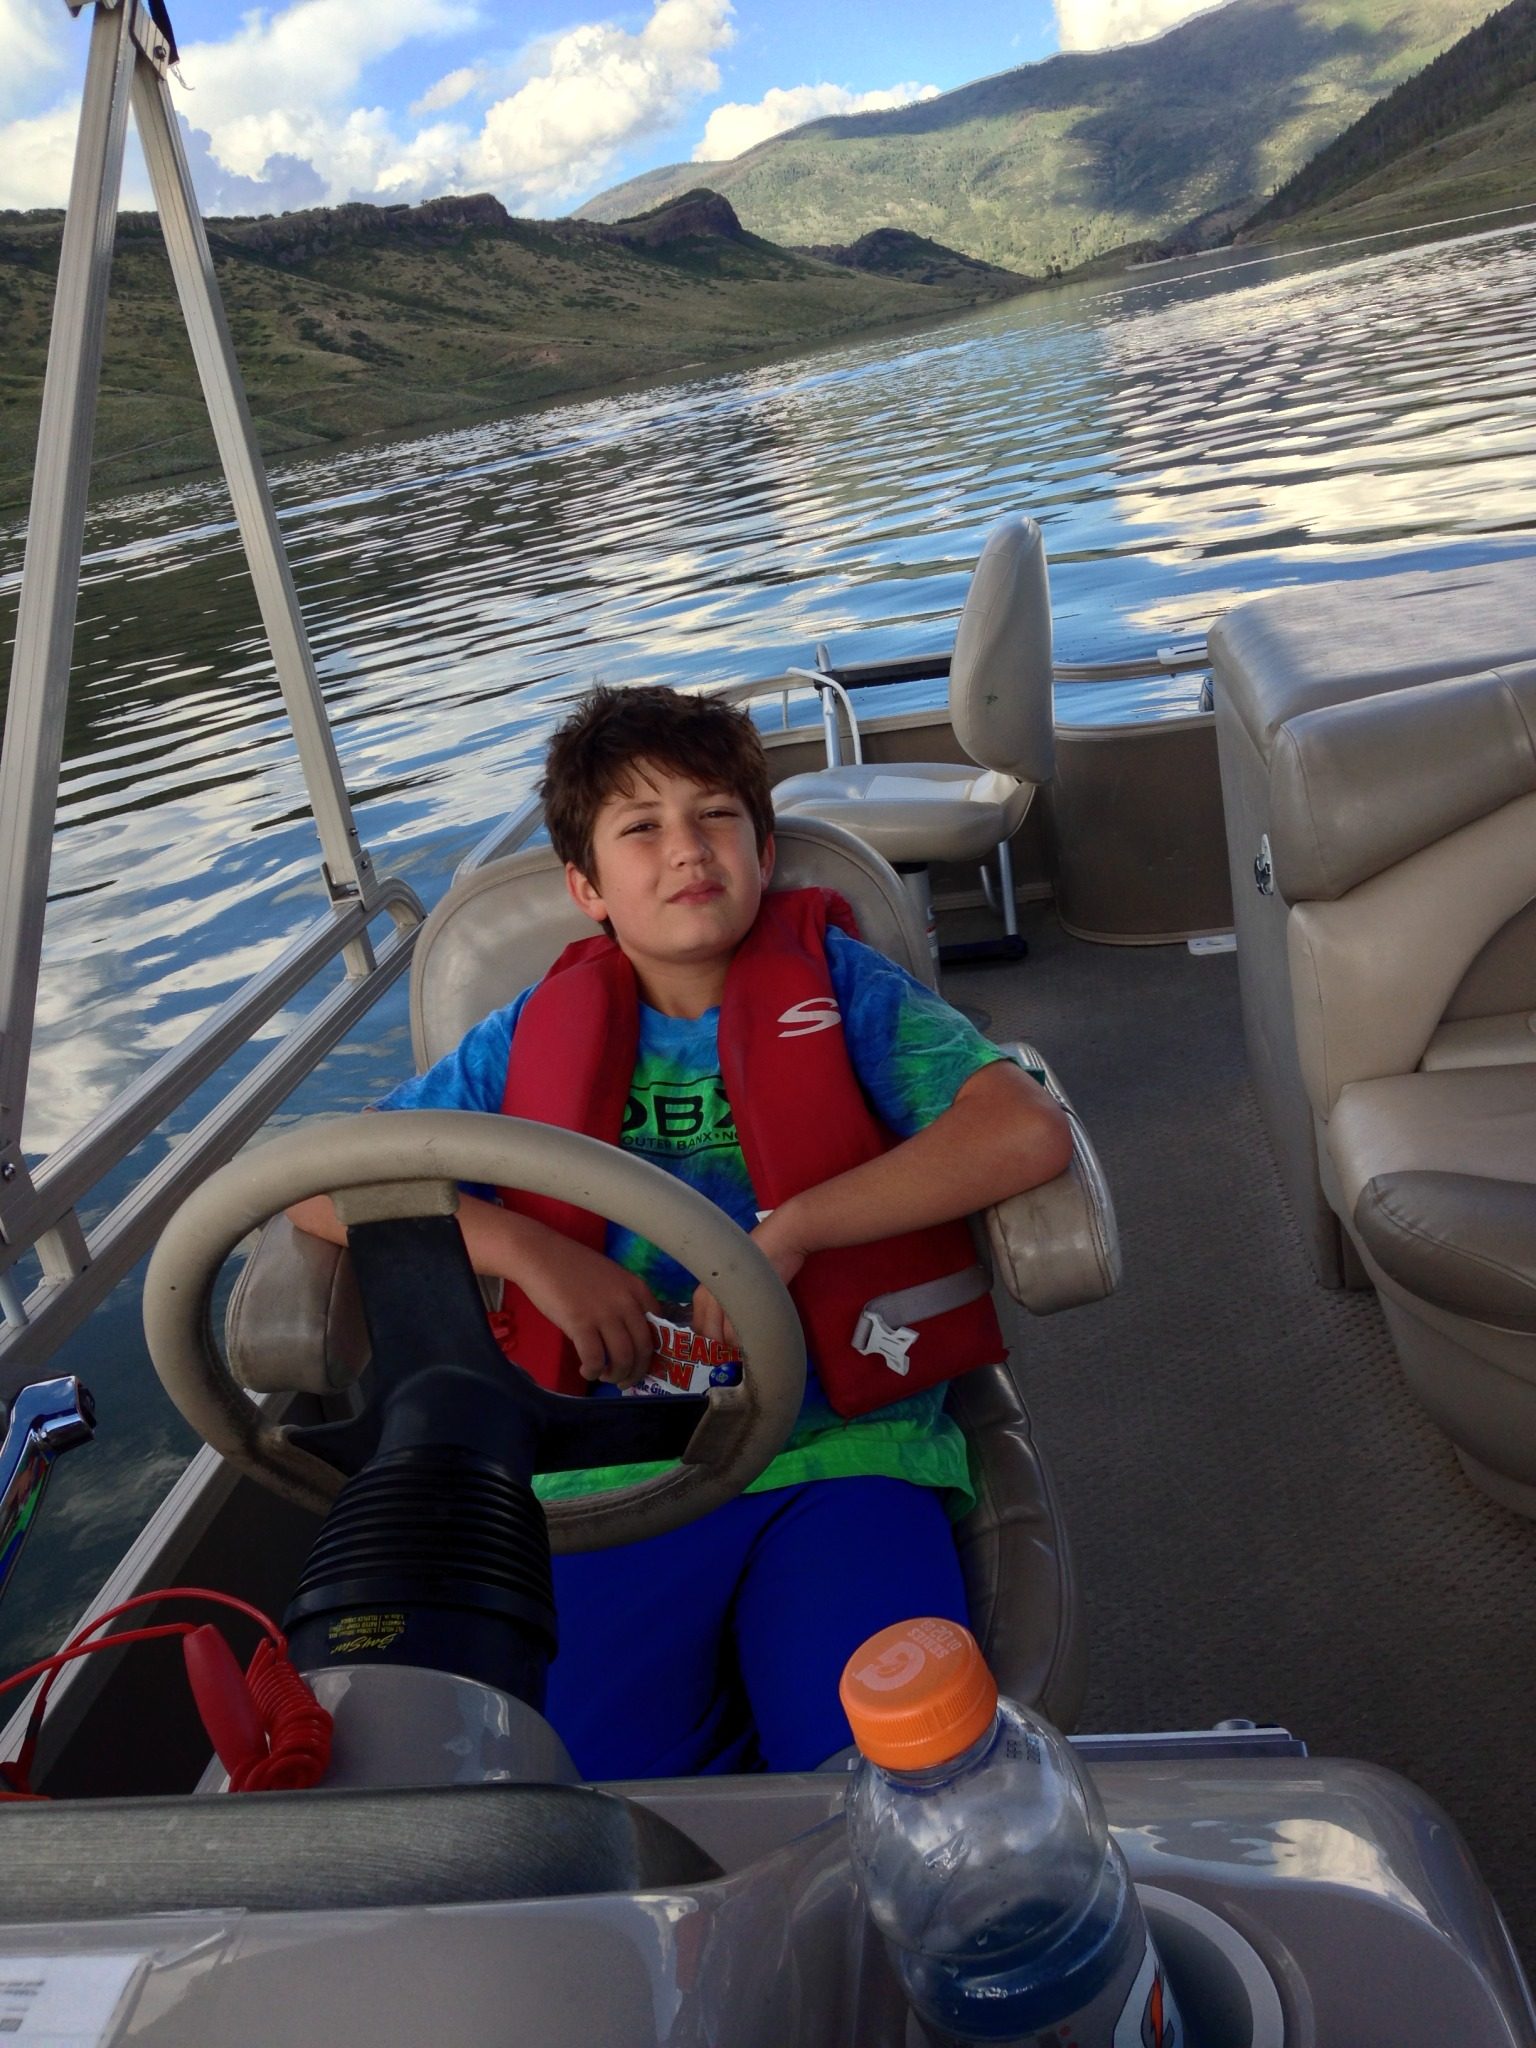 Christian chillin' at the helm